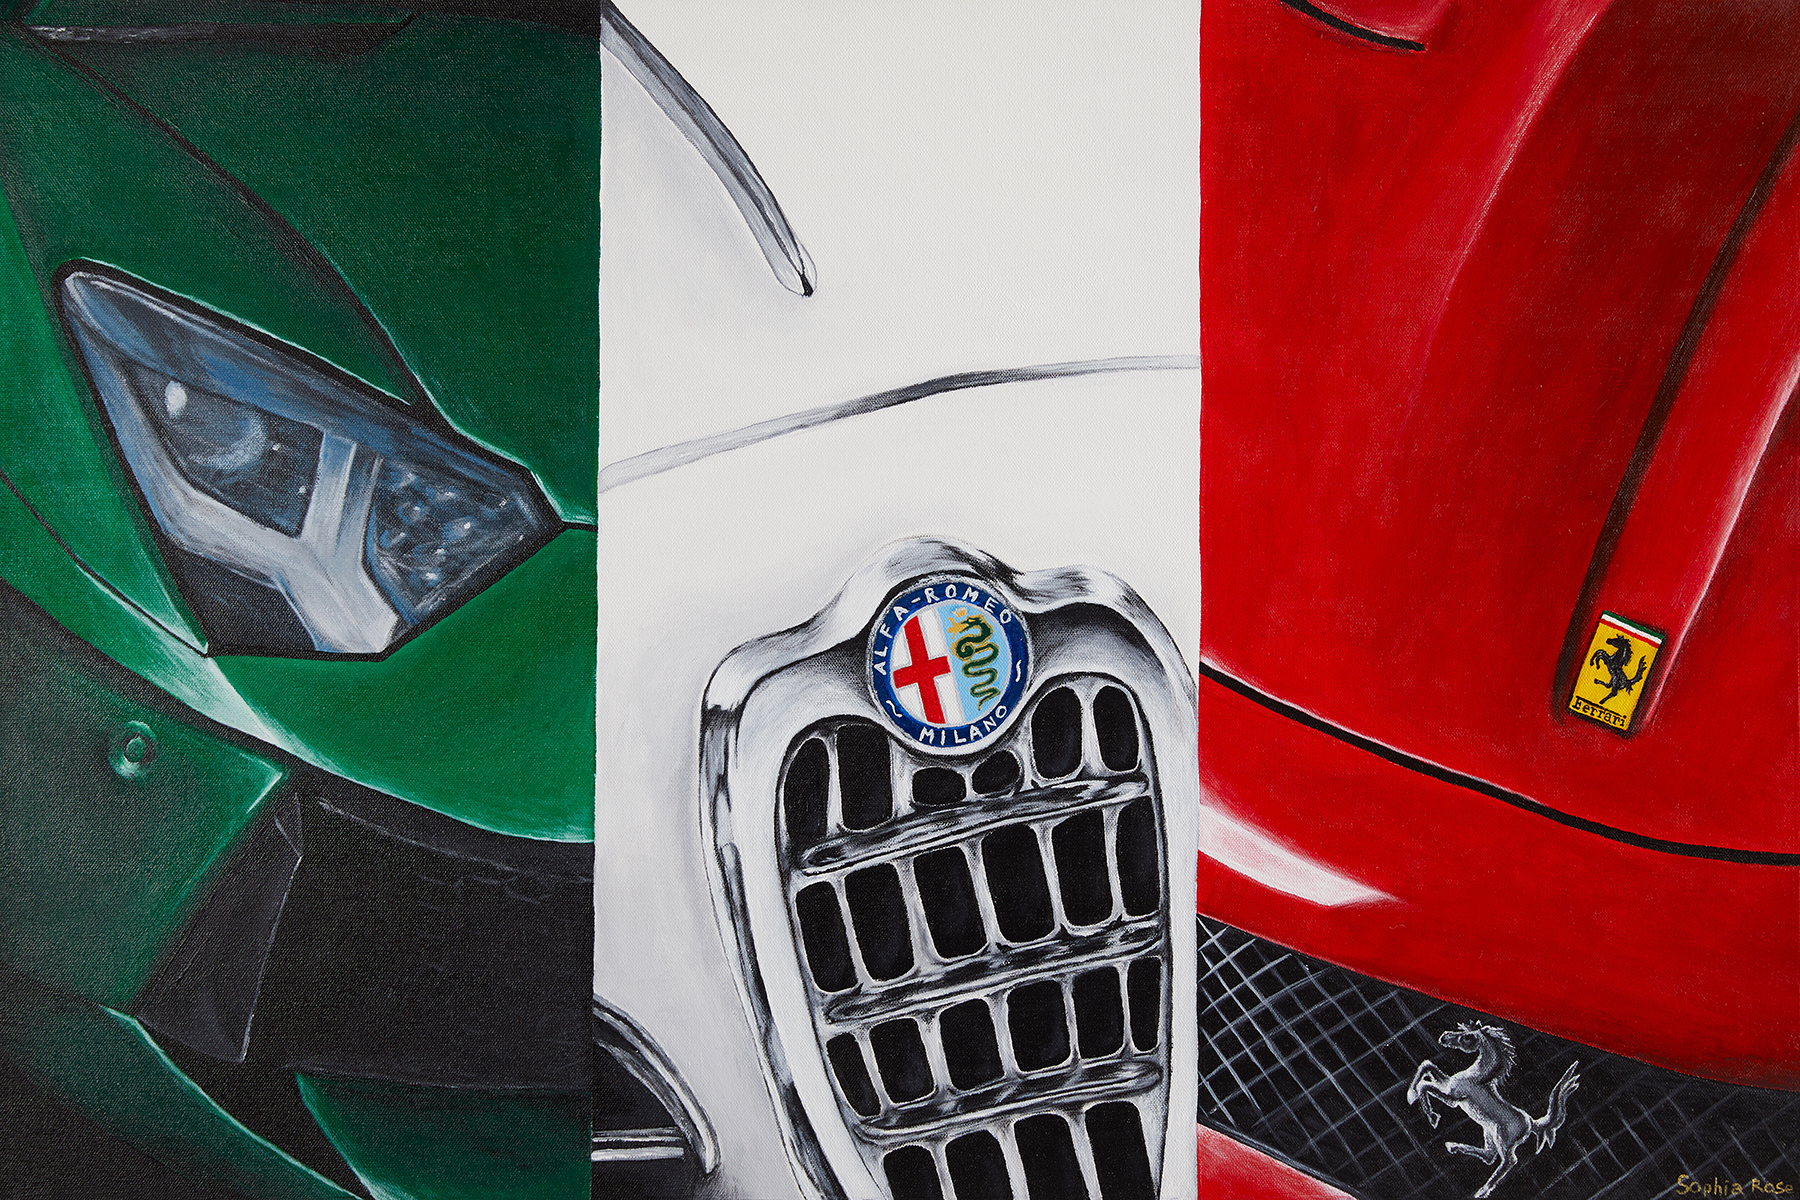 Passione artwork by Sophia Rose - art listed for sale on Artplode